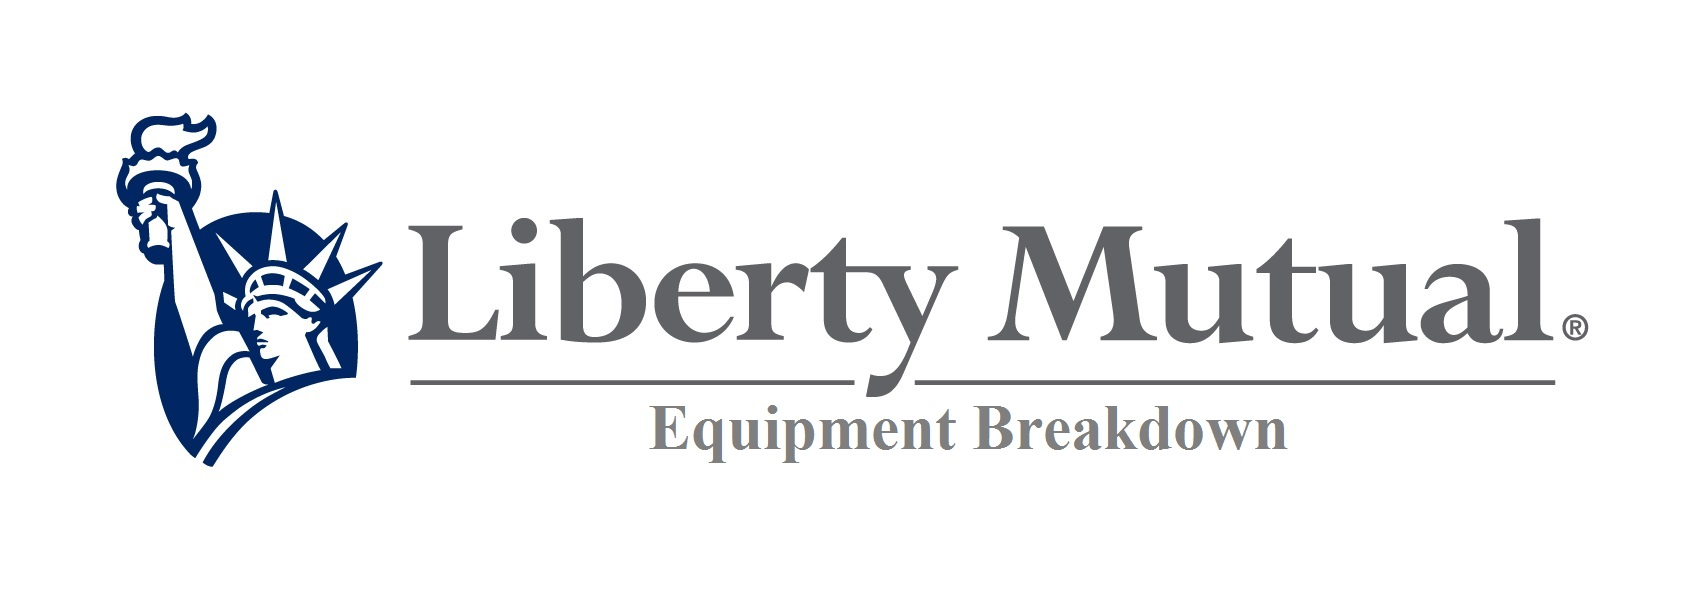 Liberty Mutual Equipment Breakdown